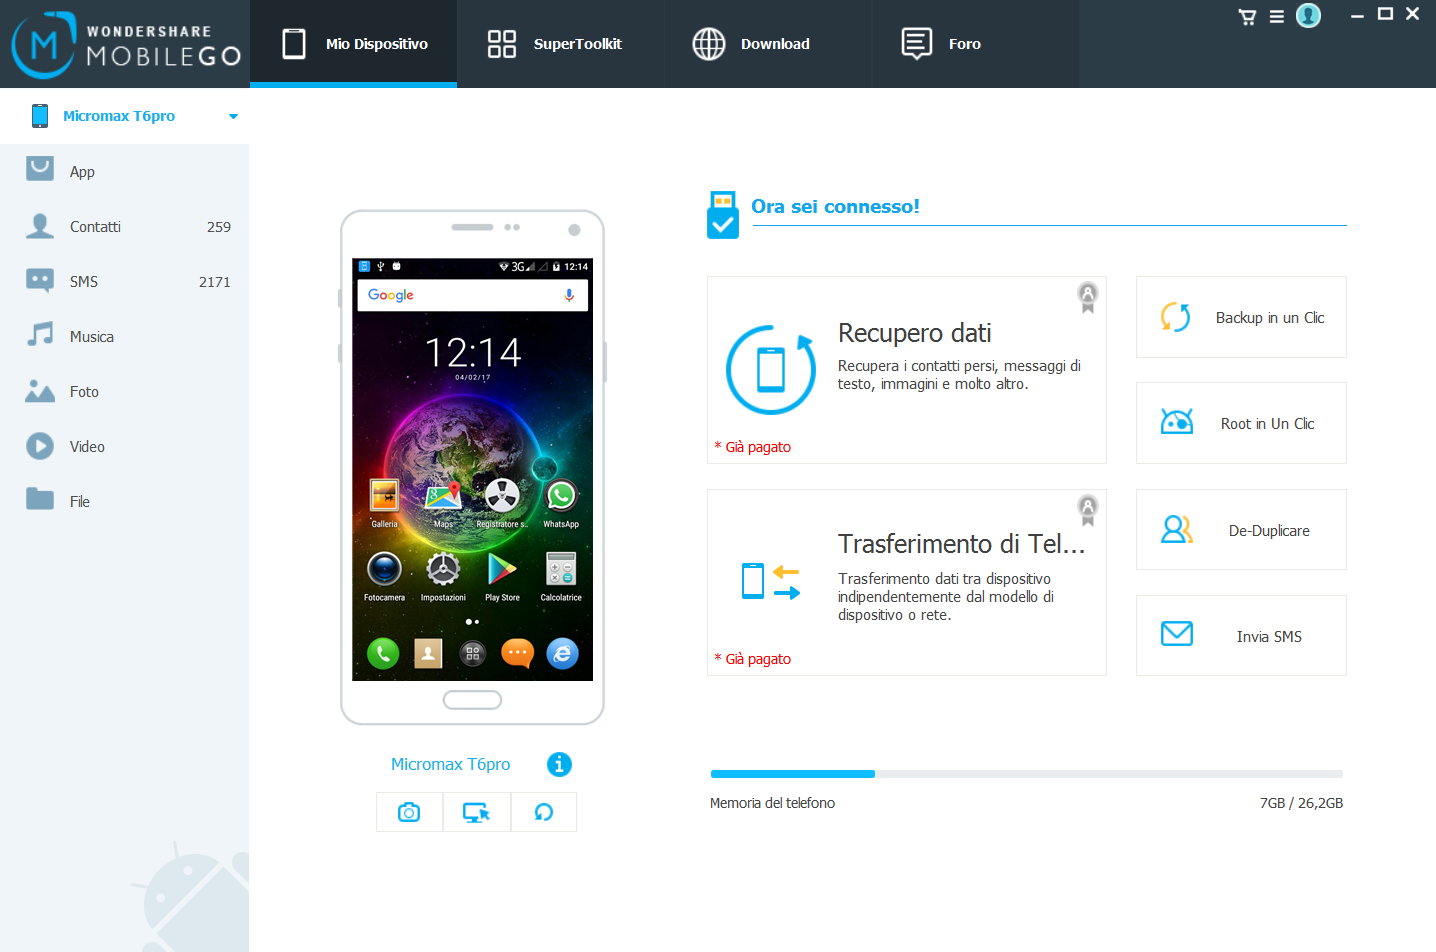 Collegare e Gestire Samsung Galaxy da PC o Mac